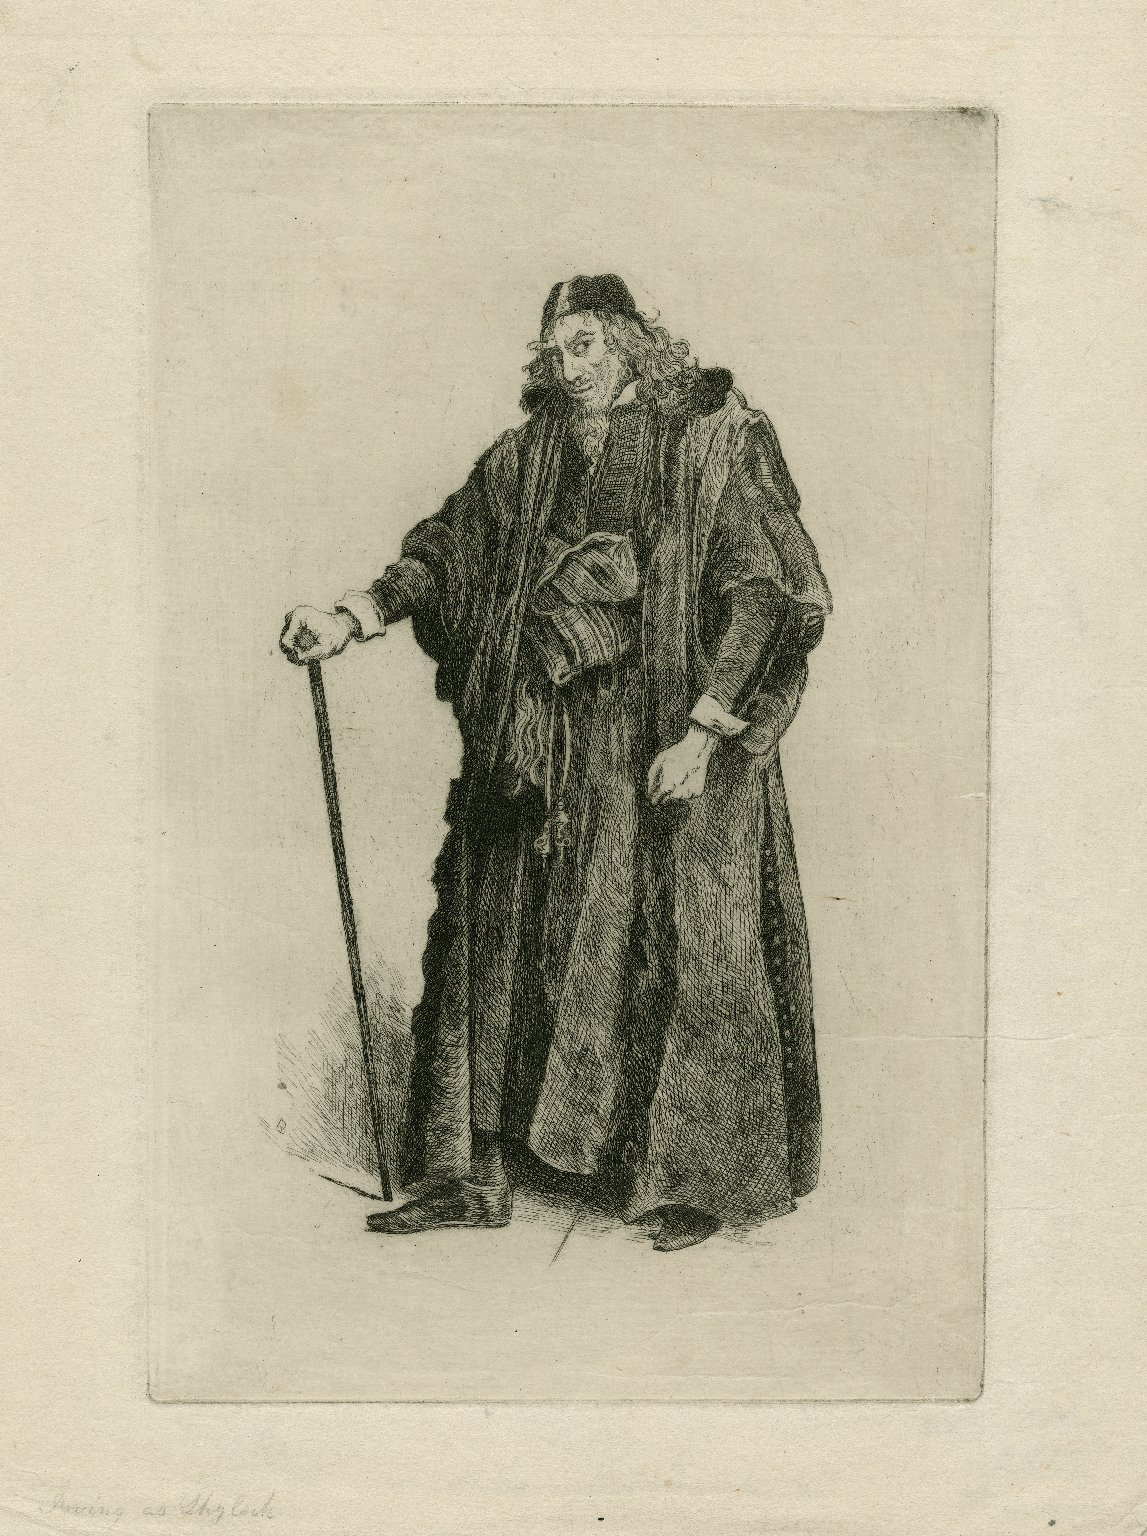 [Irving as Shylock in Shakespeare's Merchant of Venice] [graphic] / AB [sculp]